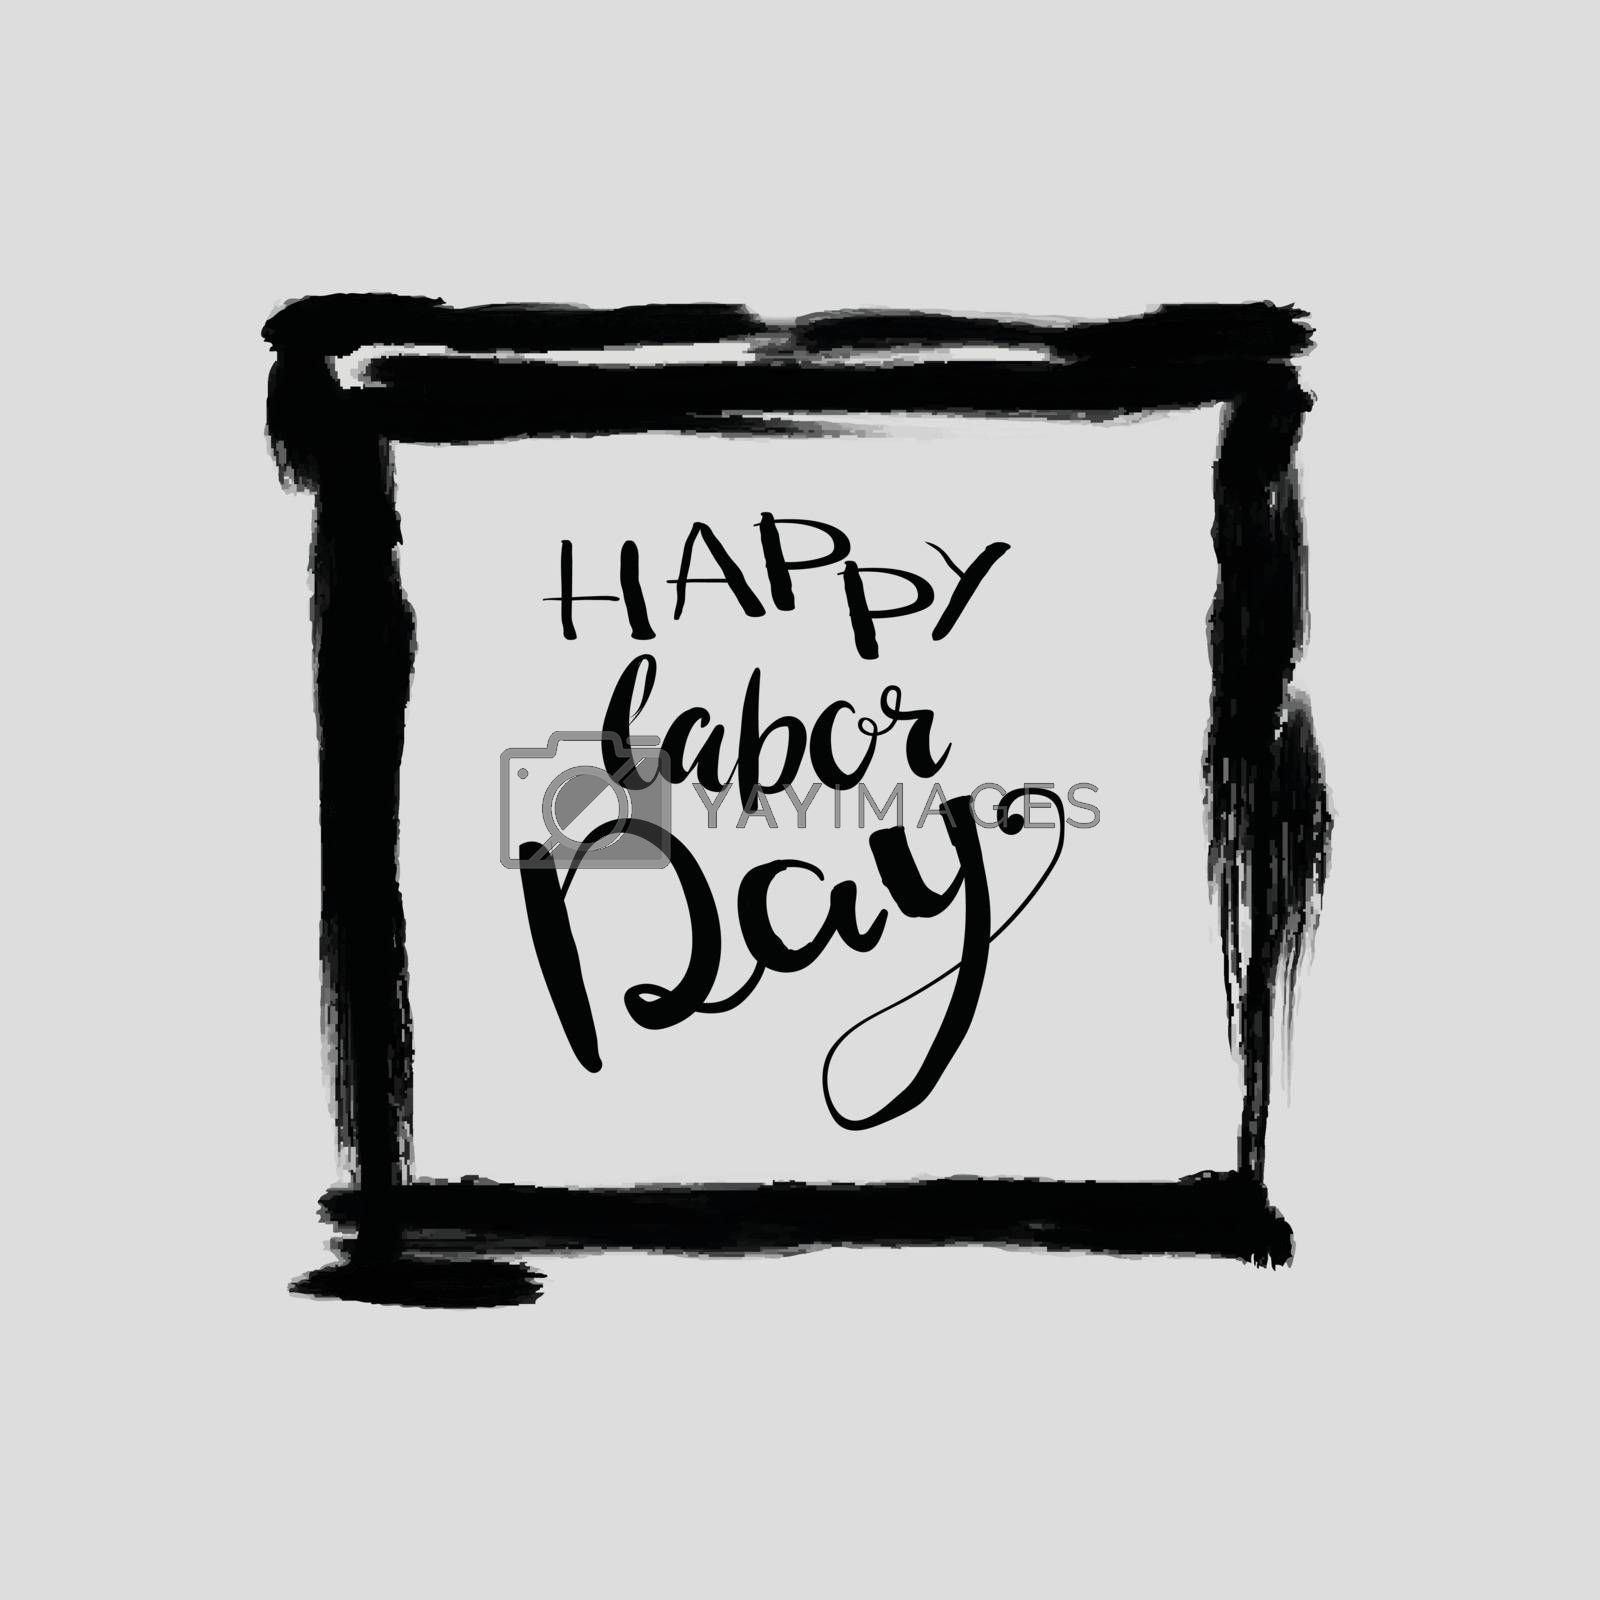 Happy Labor day typographic monochrome design. Usable as Labor day letter banner, cards, posters. Hand Lettering on grunge ink background. Black dirty decoration with text. Vector illustration.